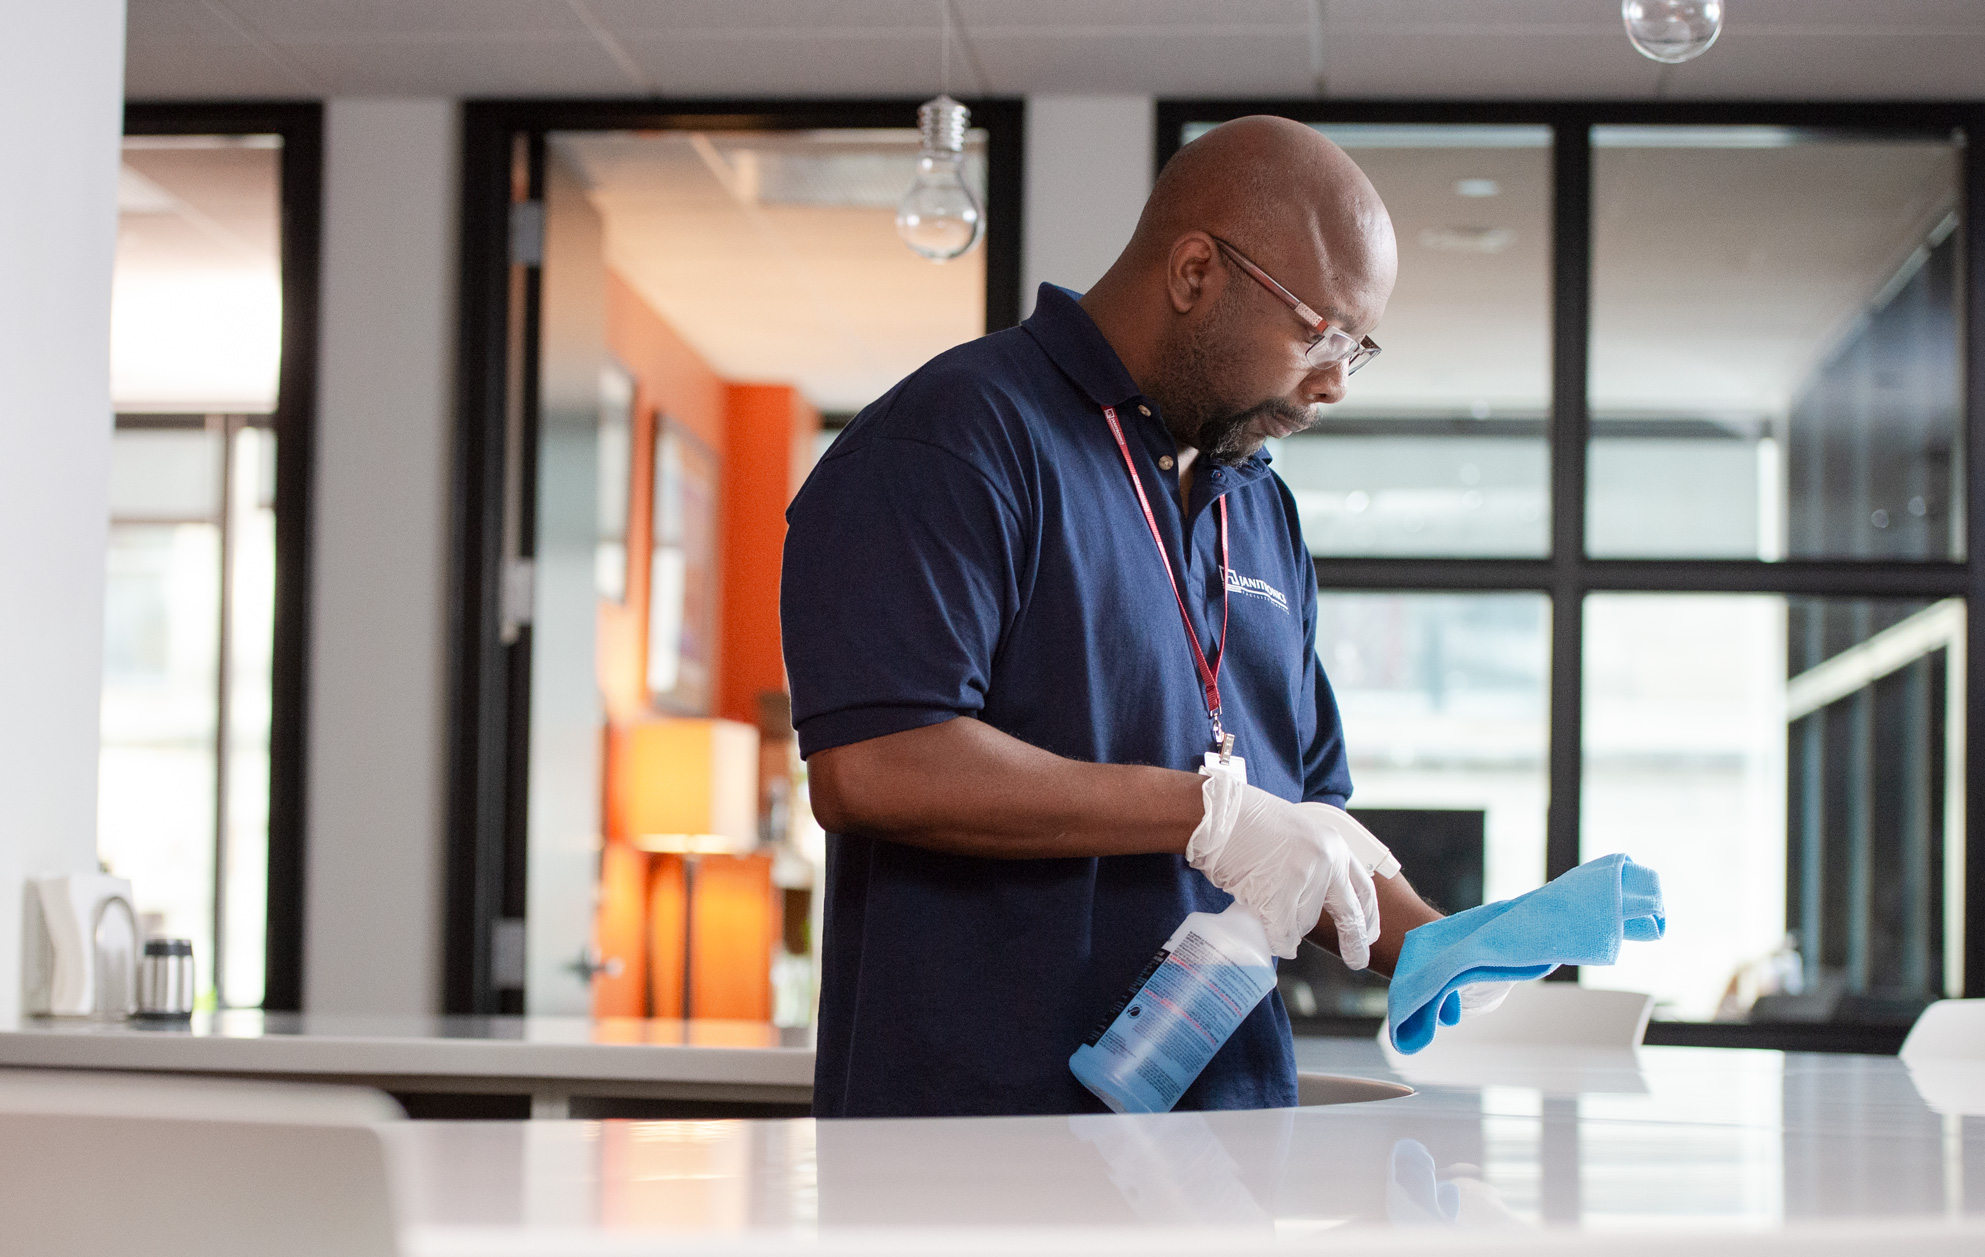 Janitronics employee spraying blue towel over counter